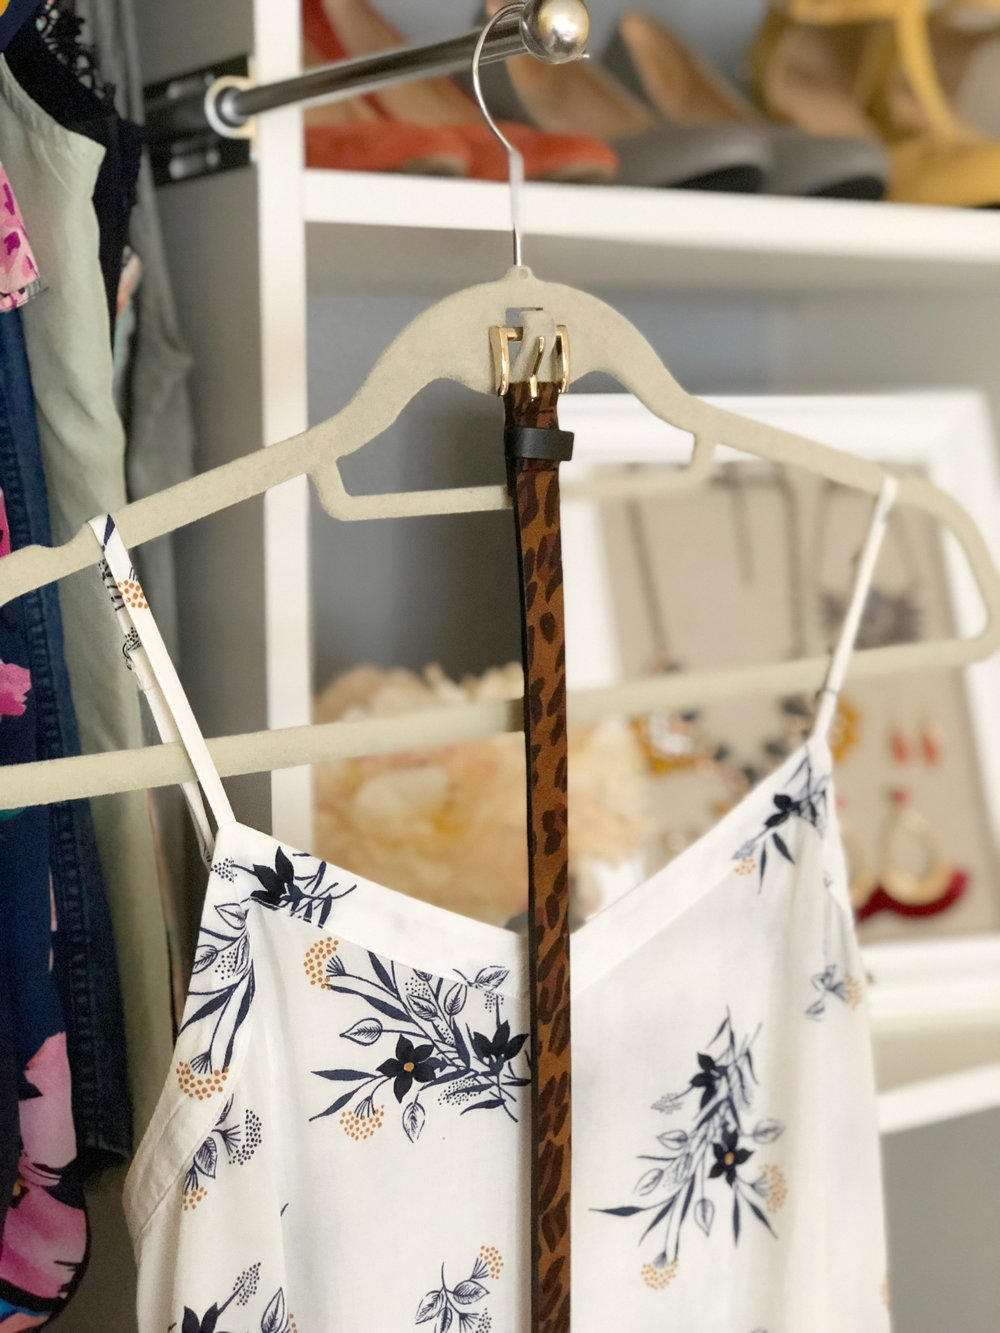 Velvet Hangers - The Style Shop by Sandi Mele - How to Organize Your Closet Accessories